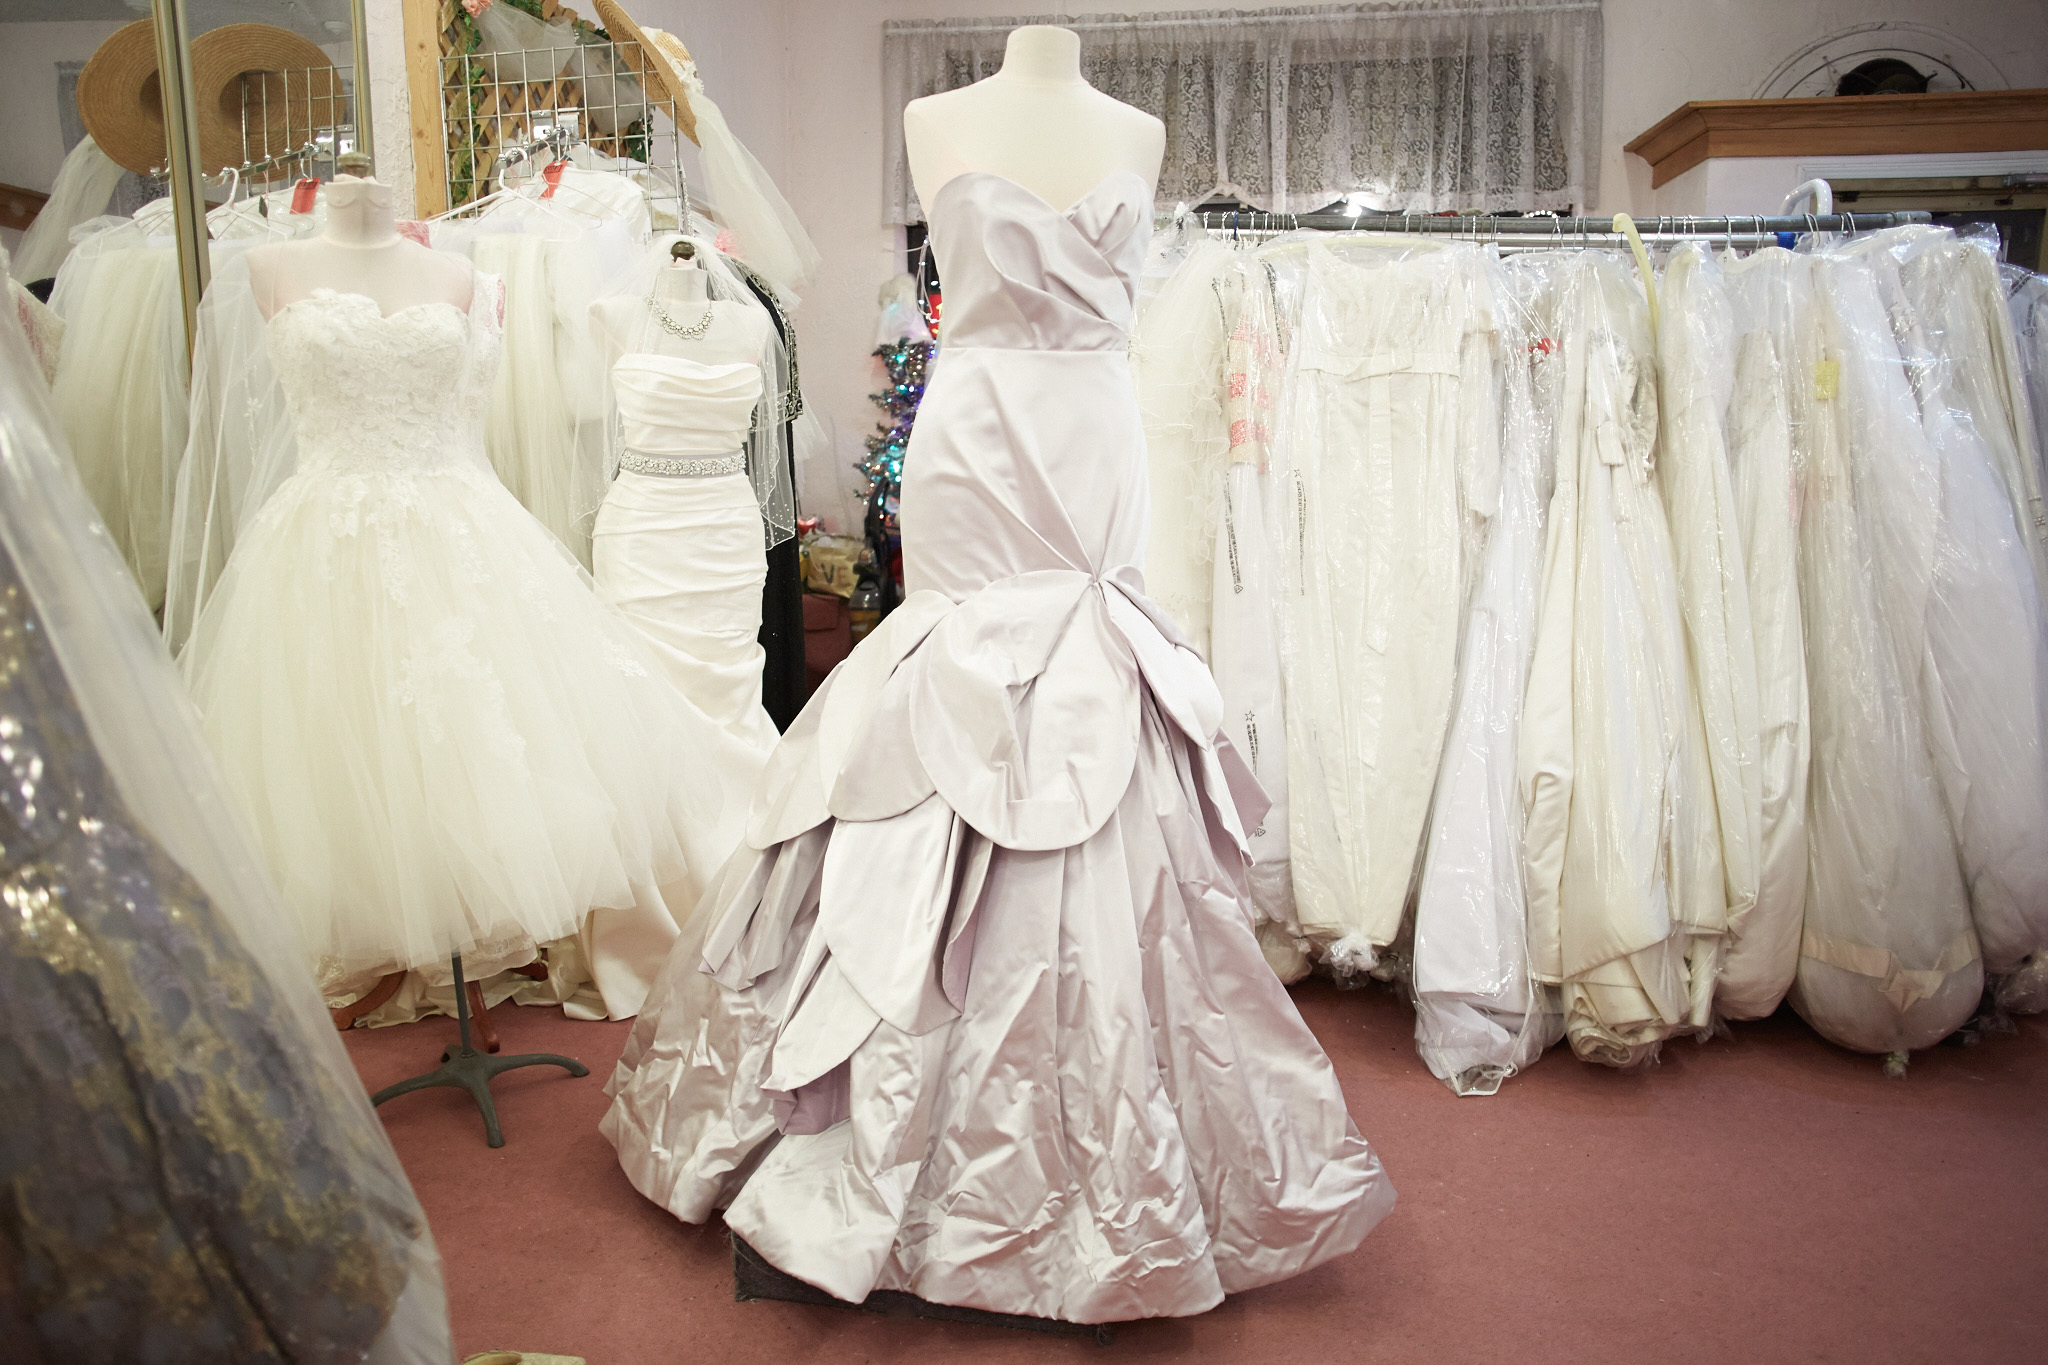 The best bridal shops in chicago for the perfect wedding dress i do designer bridal consignment ombrellifo Images